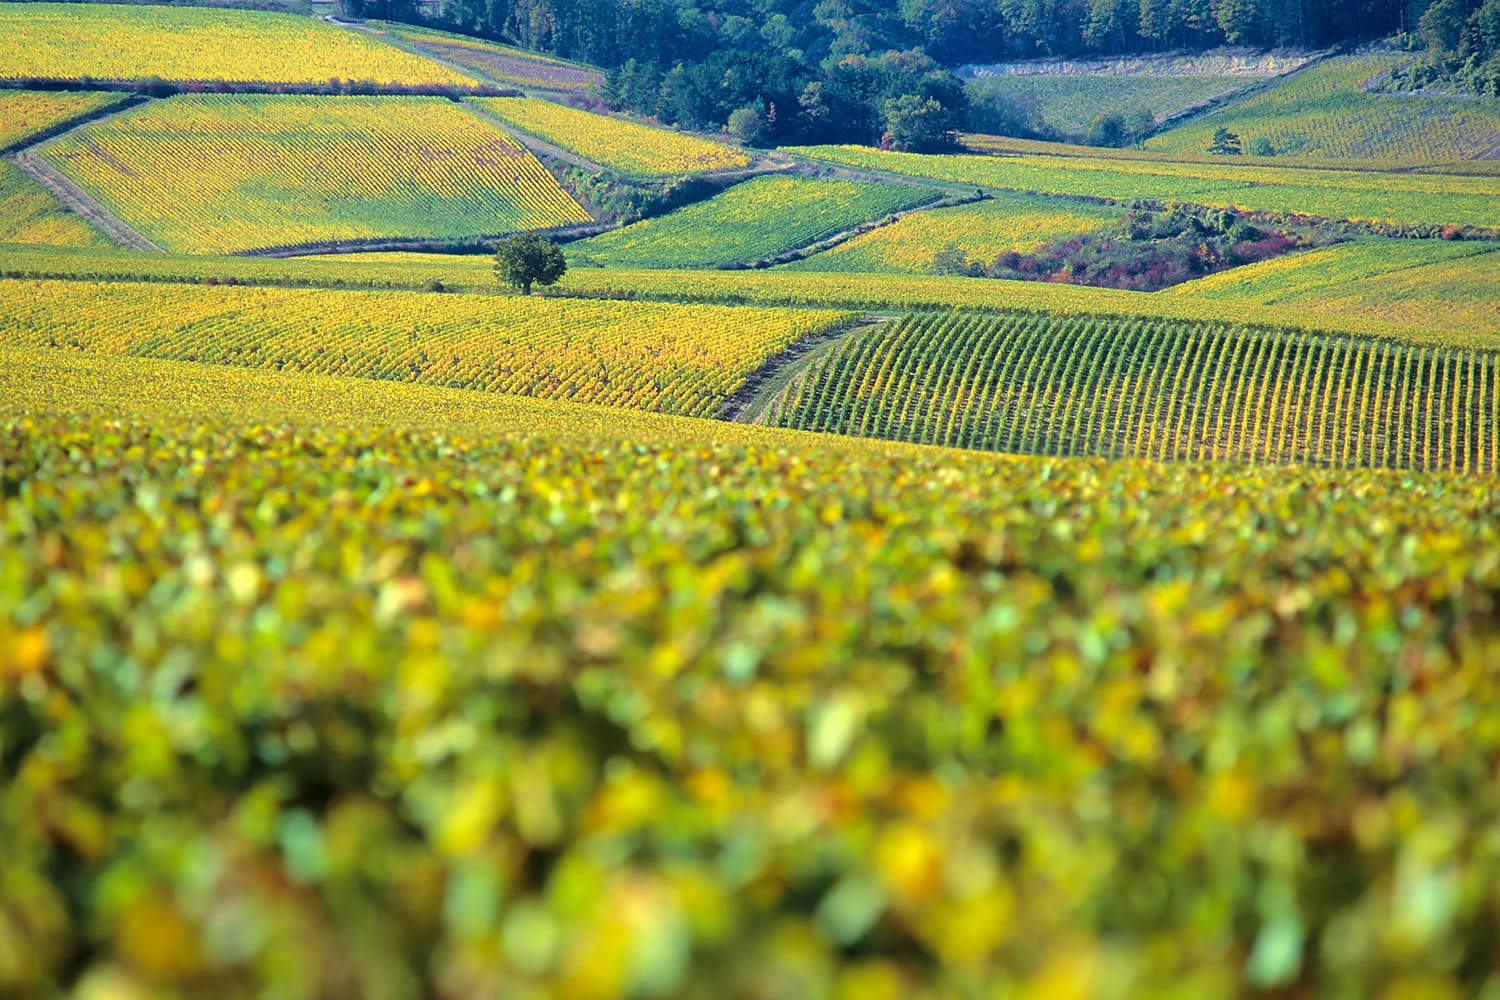 The vineyards of Chablis in autumn, Burgundy, France